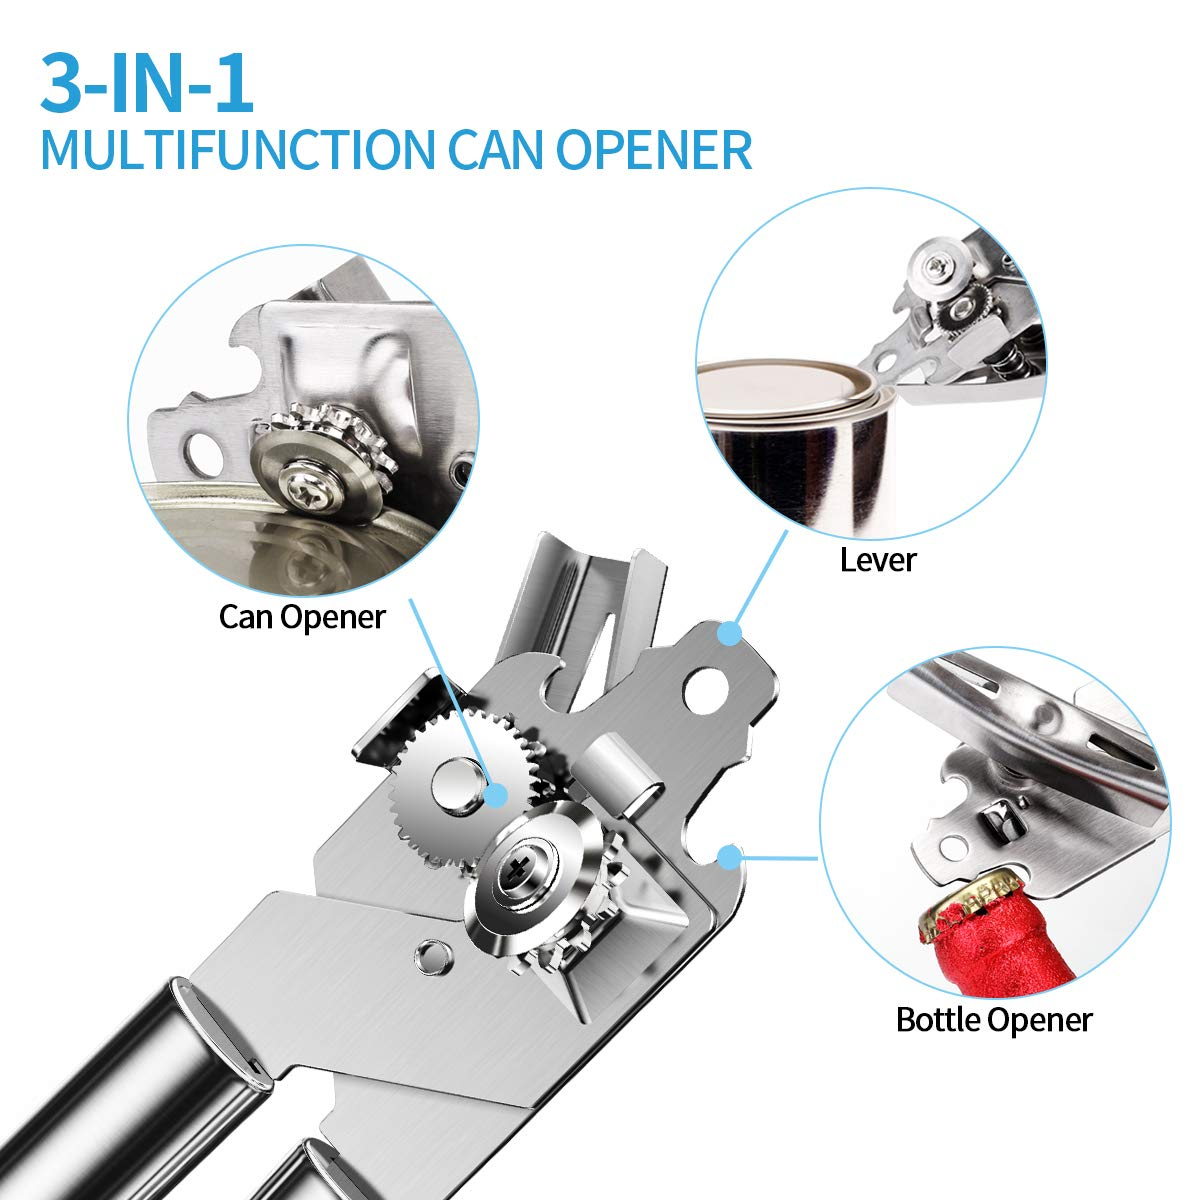 Manual Can Opener, Professional Side Cut Can Opener with Food-Safe Stainless Steel Body, Ergonomically designed handle for opening can, jar, bottle